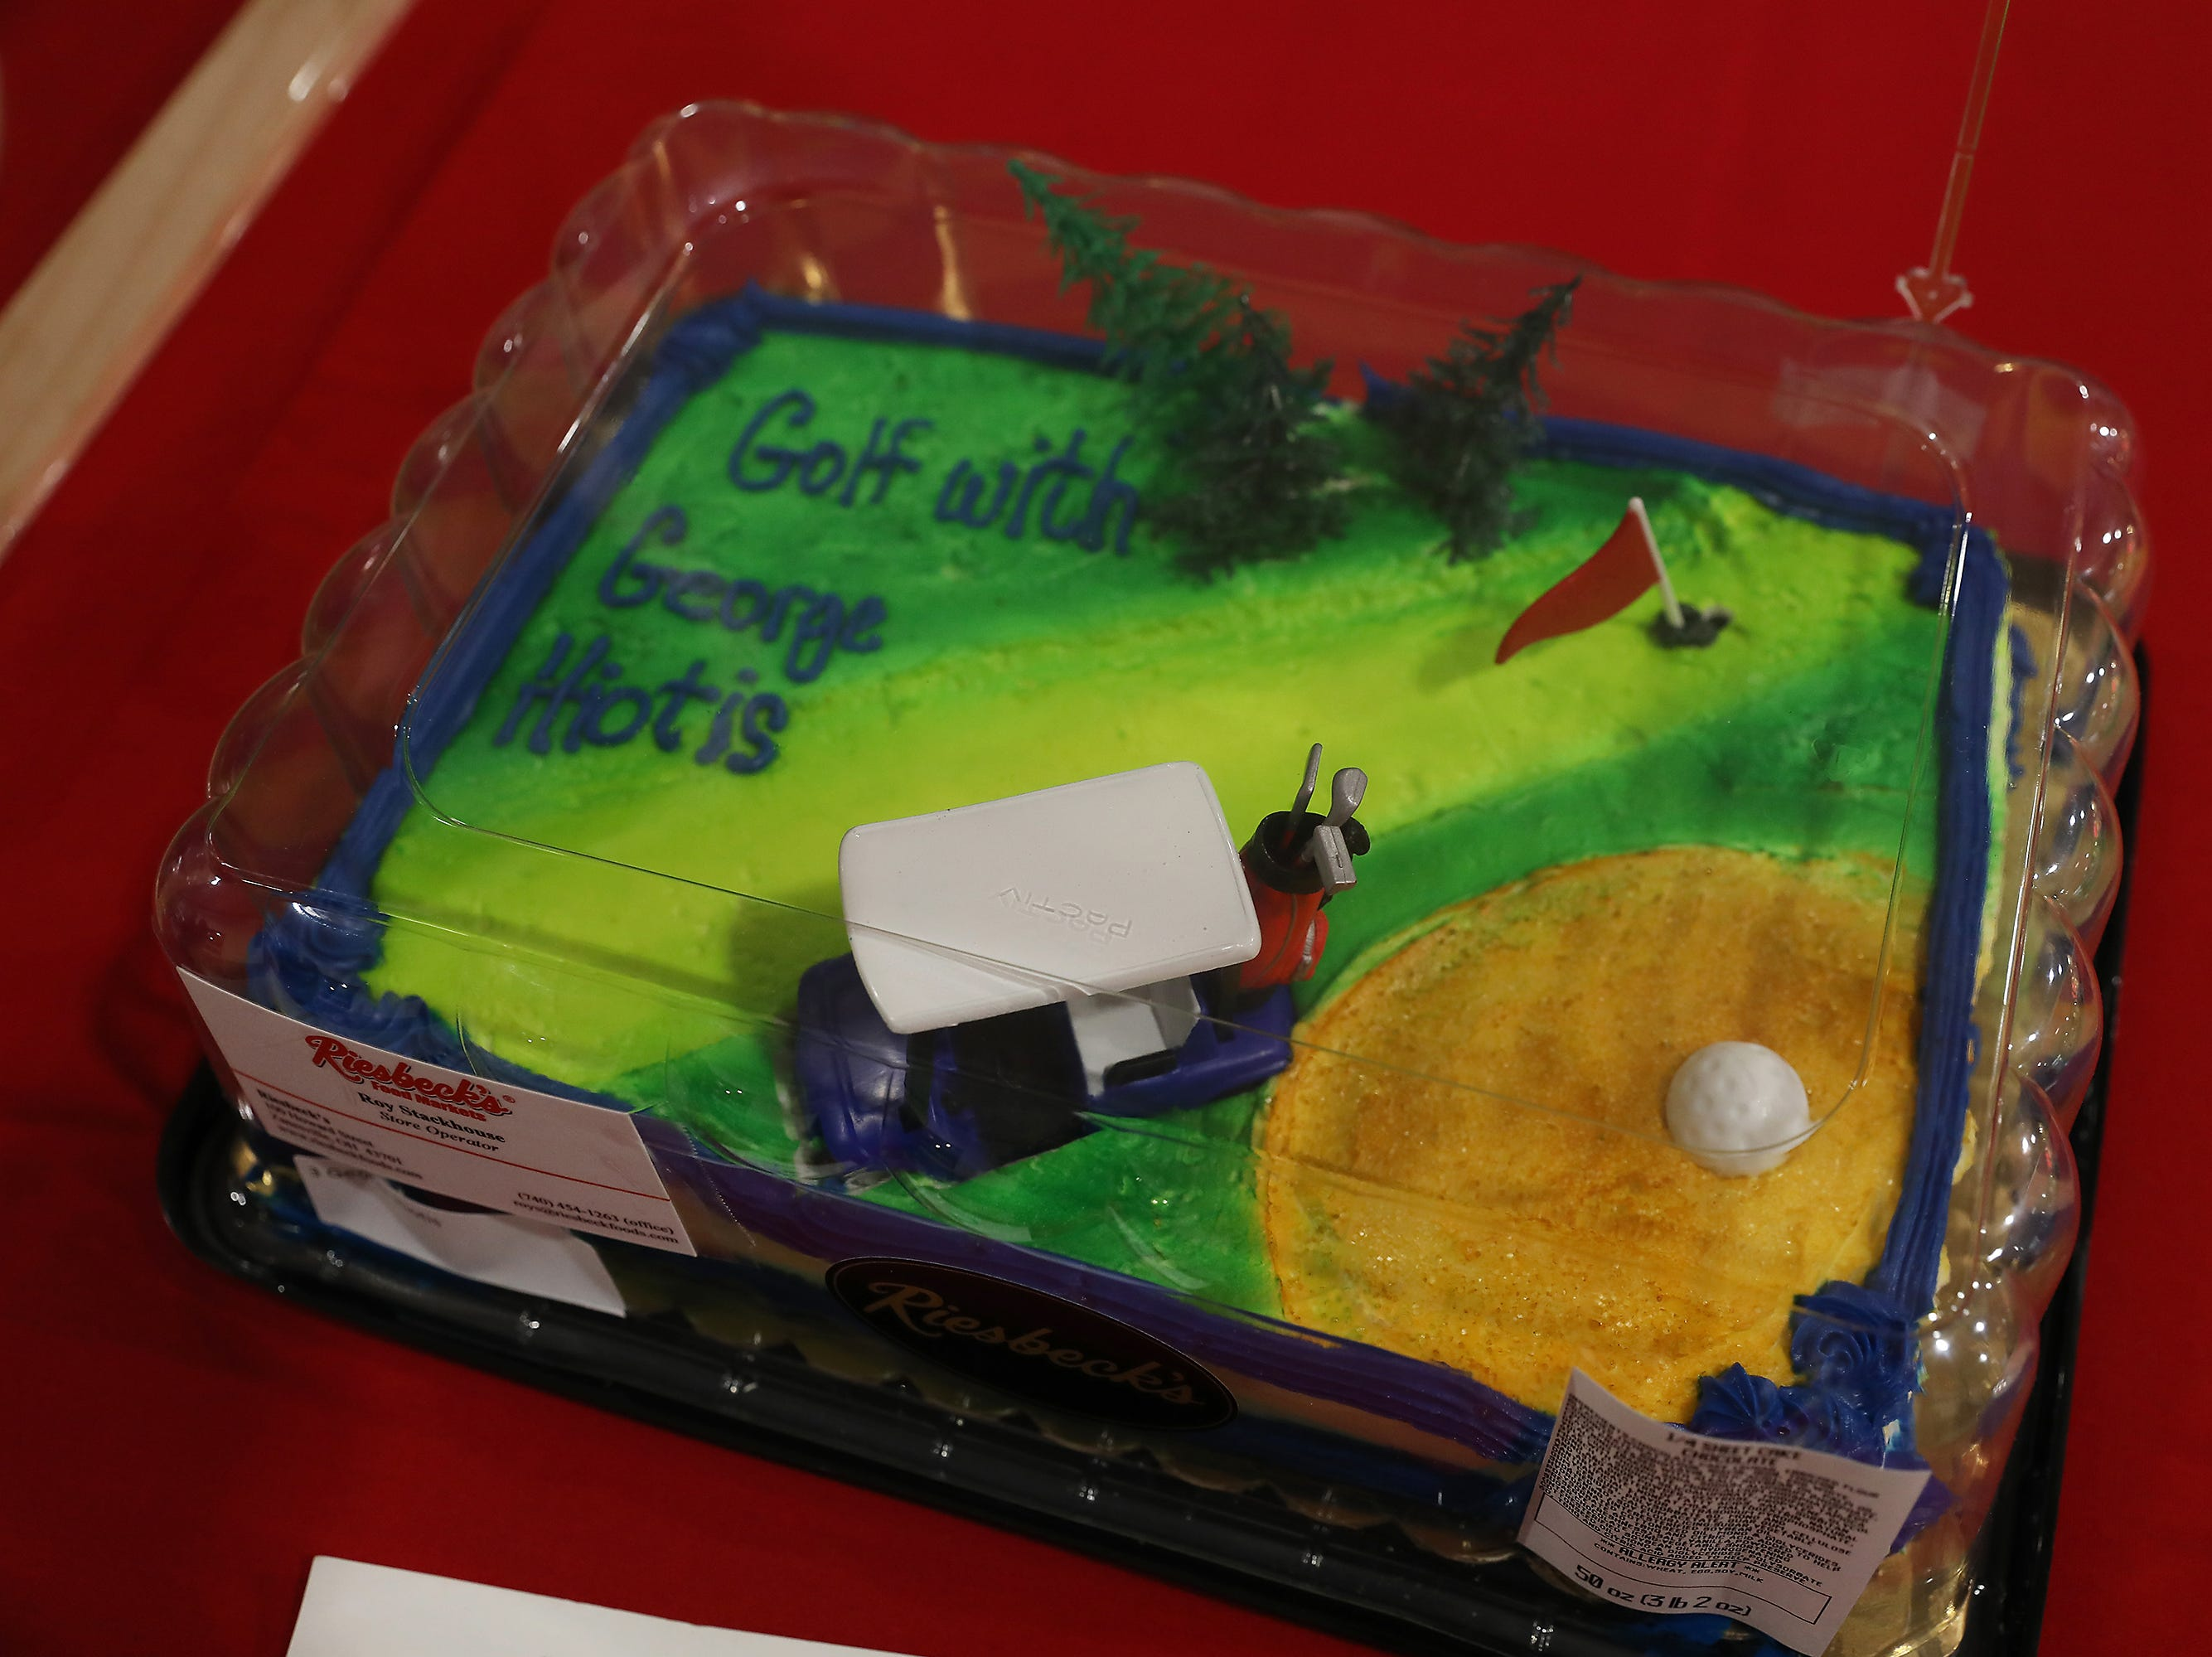 8:15 A.M. Thursday Cake 3 George Hiotis - Golf with George